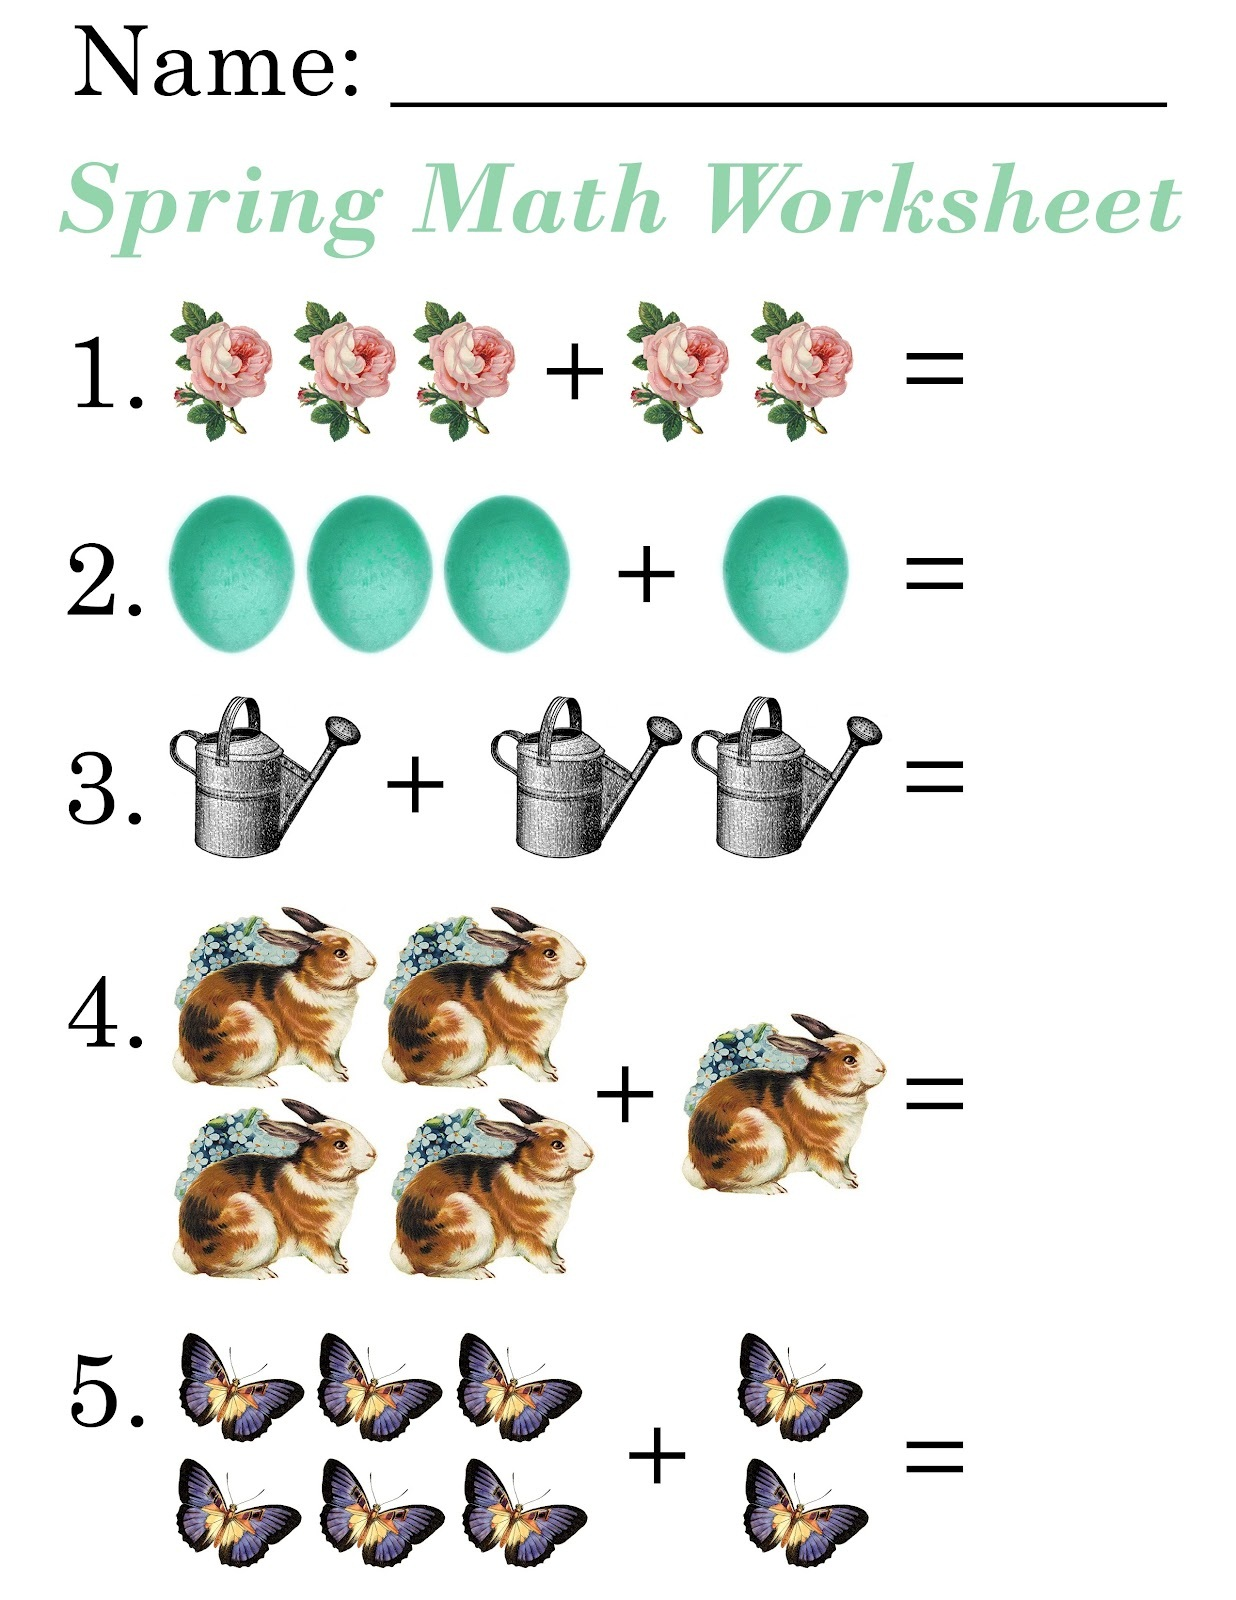 Worksheets For Grade 1 Studentshtml Addition Worksheets For – Addition Worksheets for Year 1